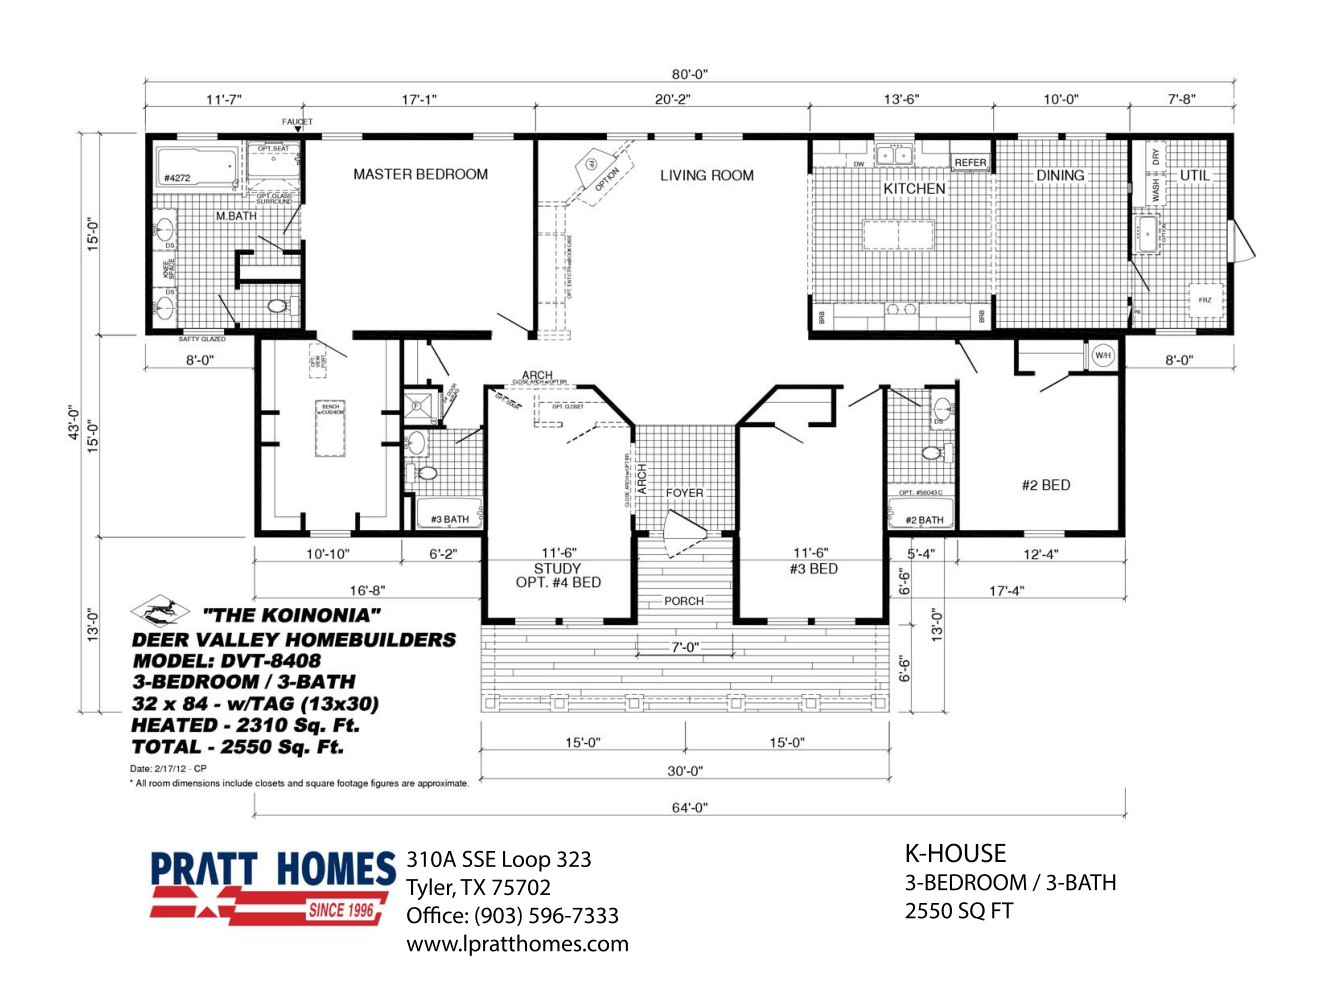 Floor Plan for house model KHouse by Pratt from Tyler Texas